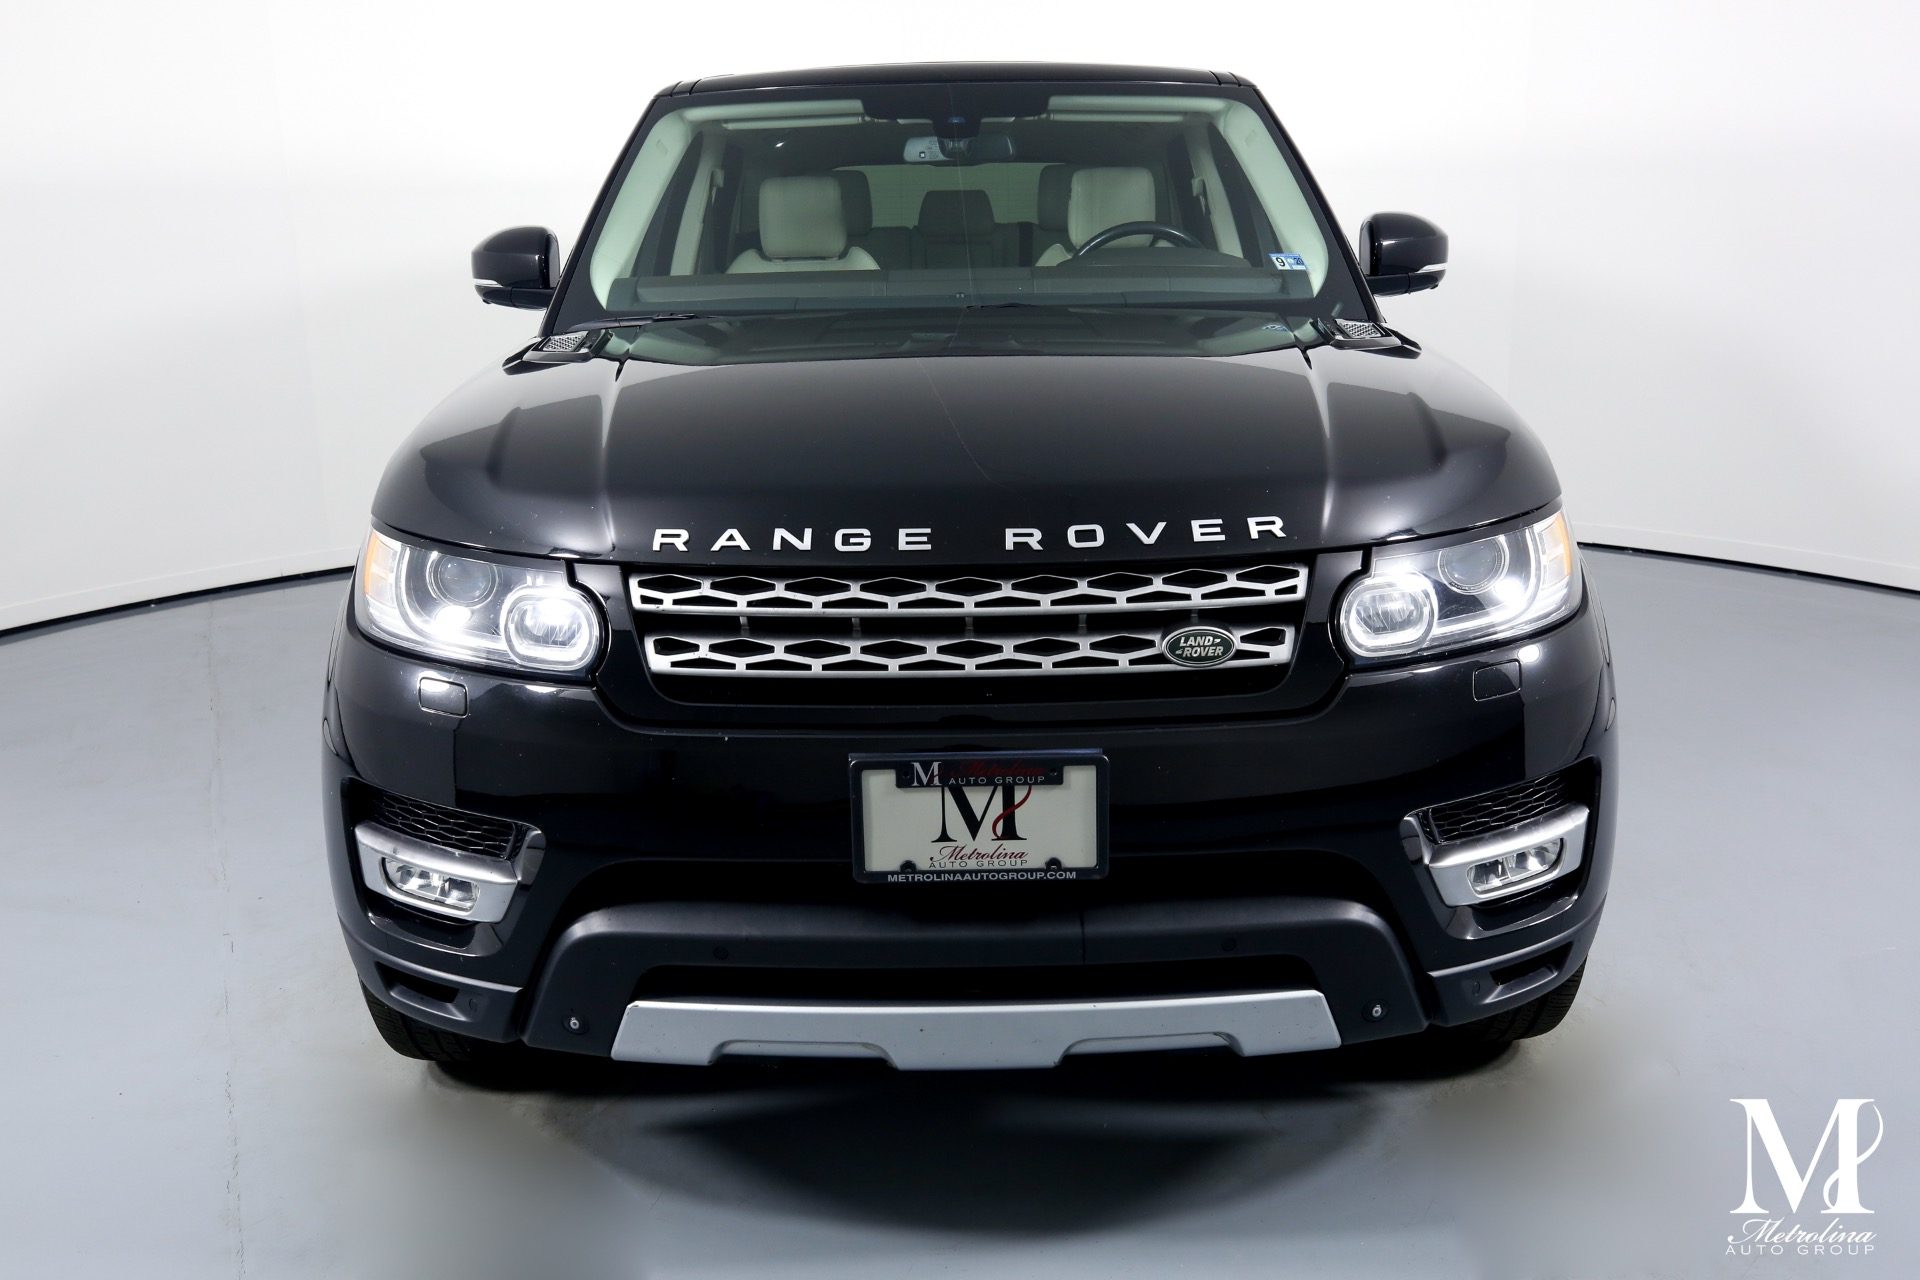 Used 2014 Land Rover Range Rover Sport Supercharged for sale $29,996 at Metrolina Auto Group in Charlotte NC 28217 - 3